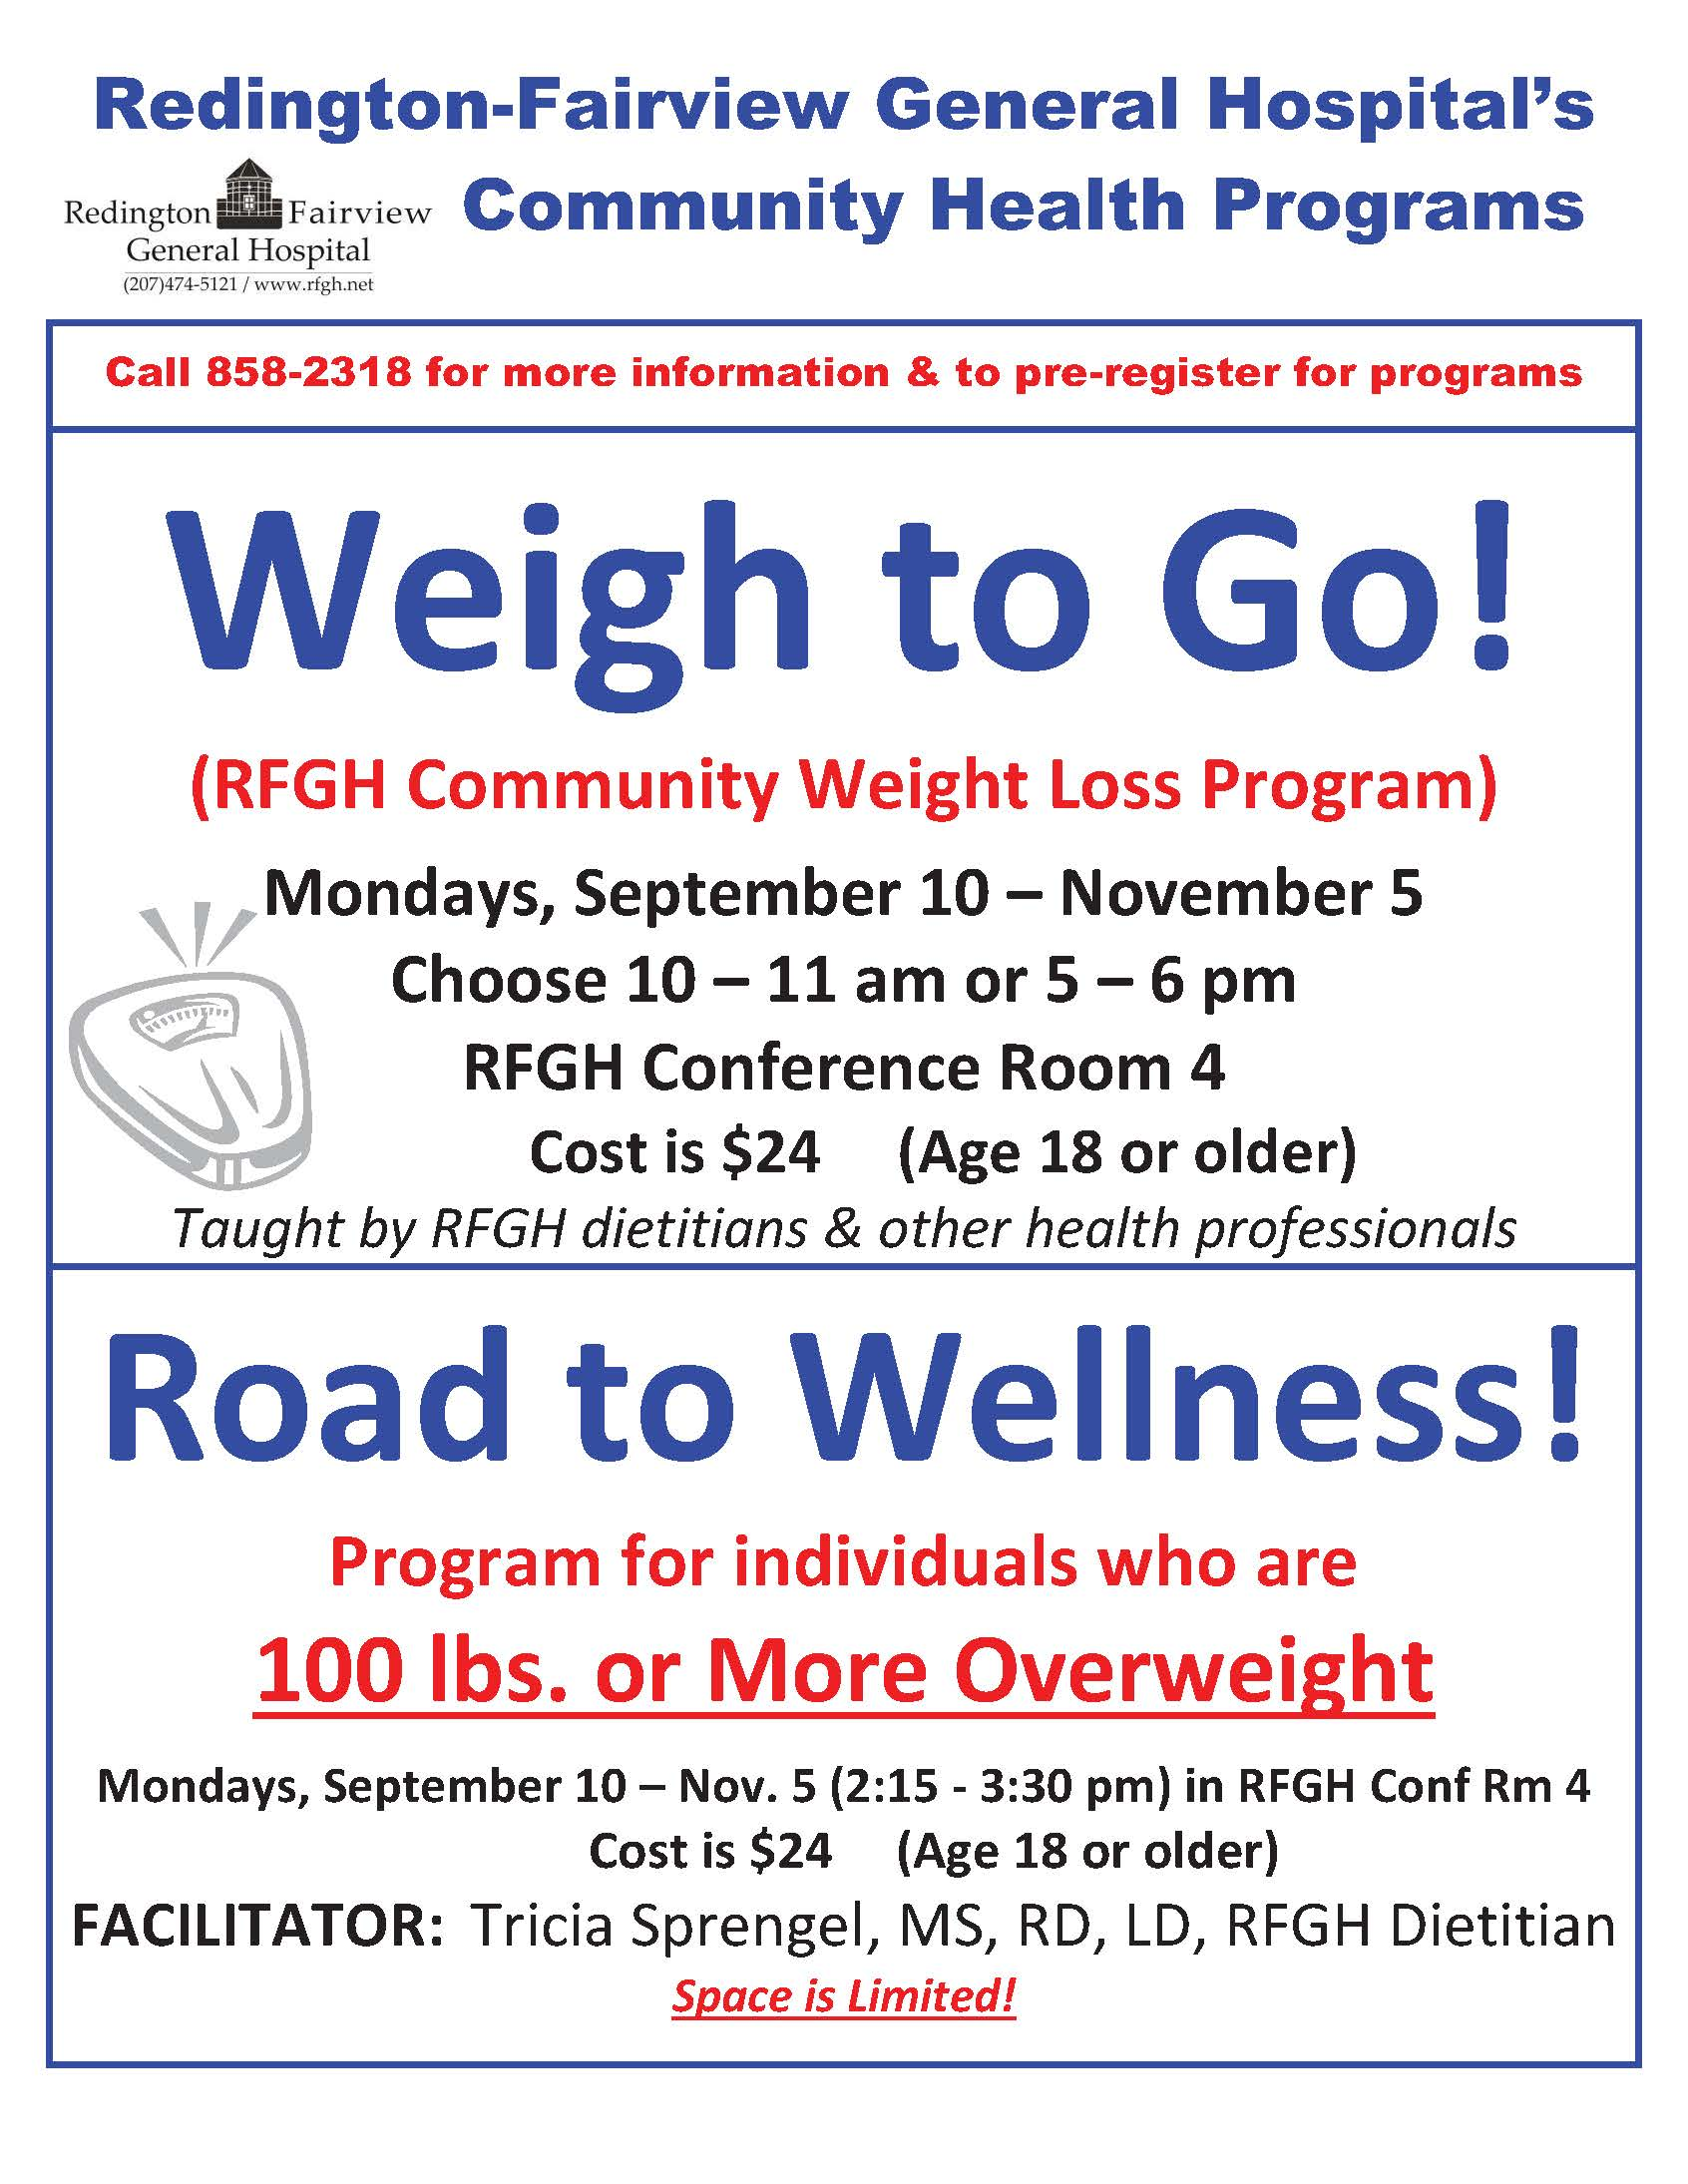 Weigh to Go